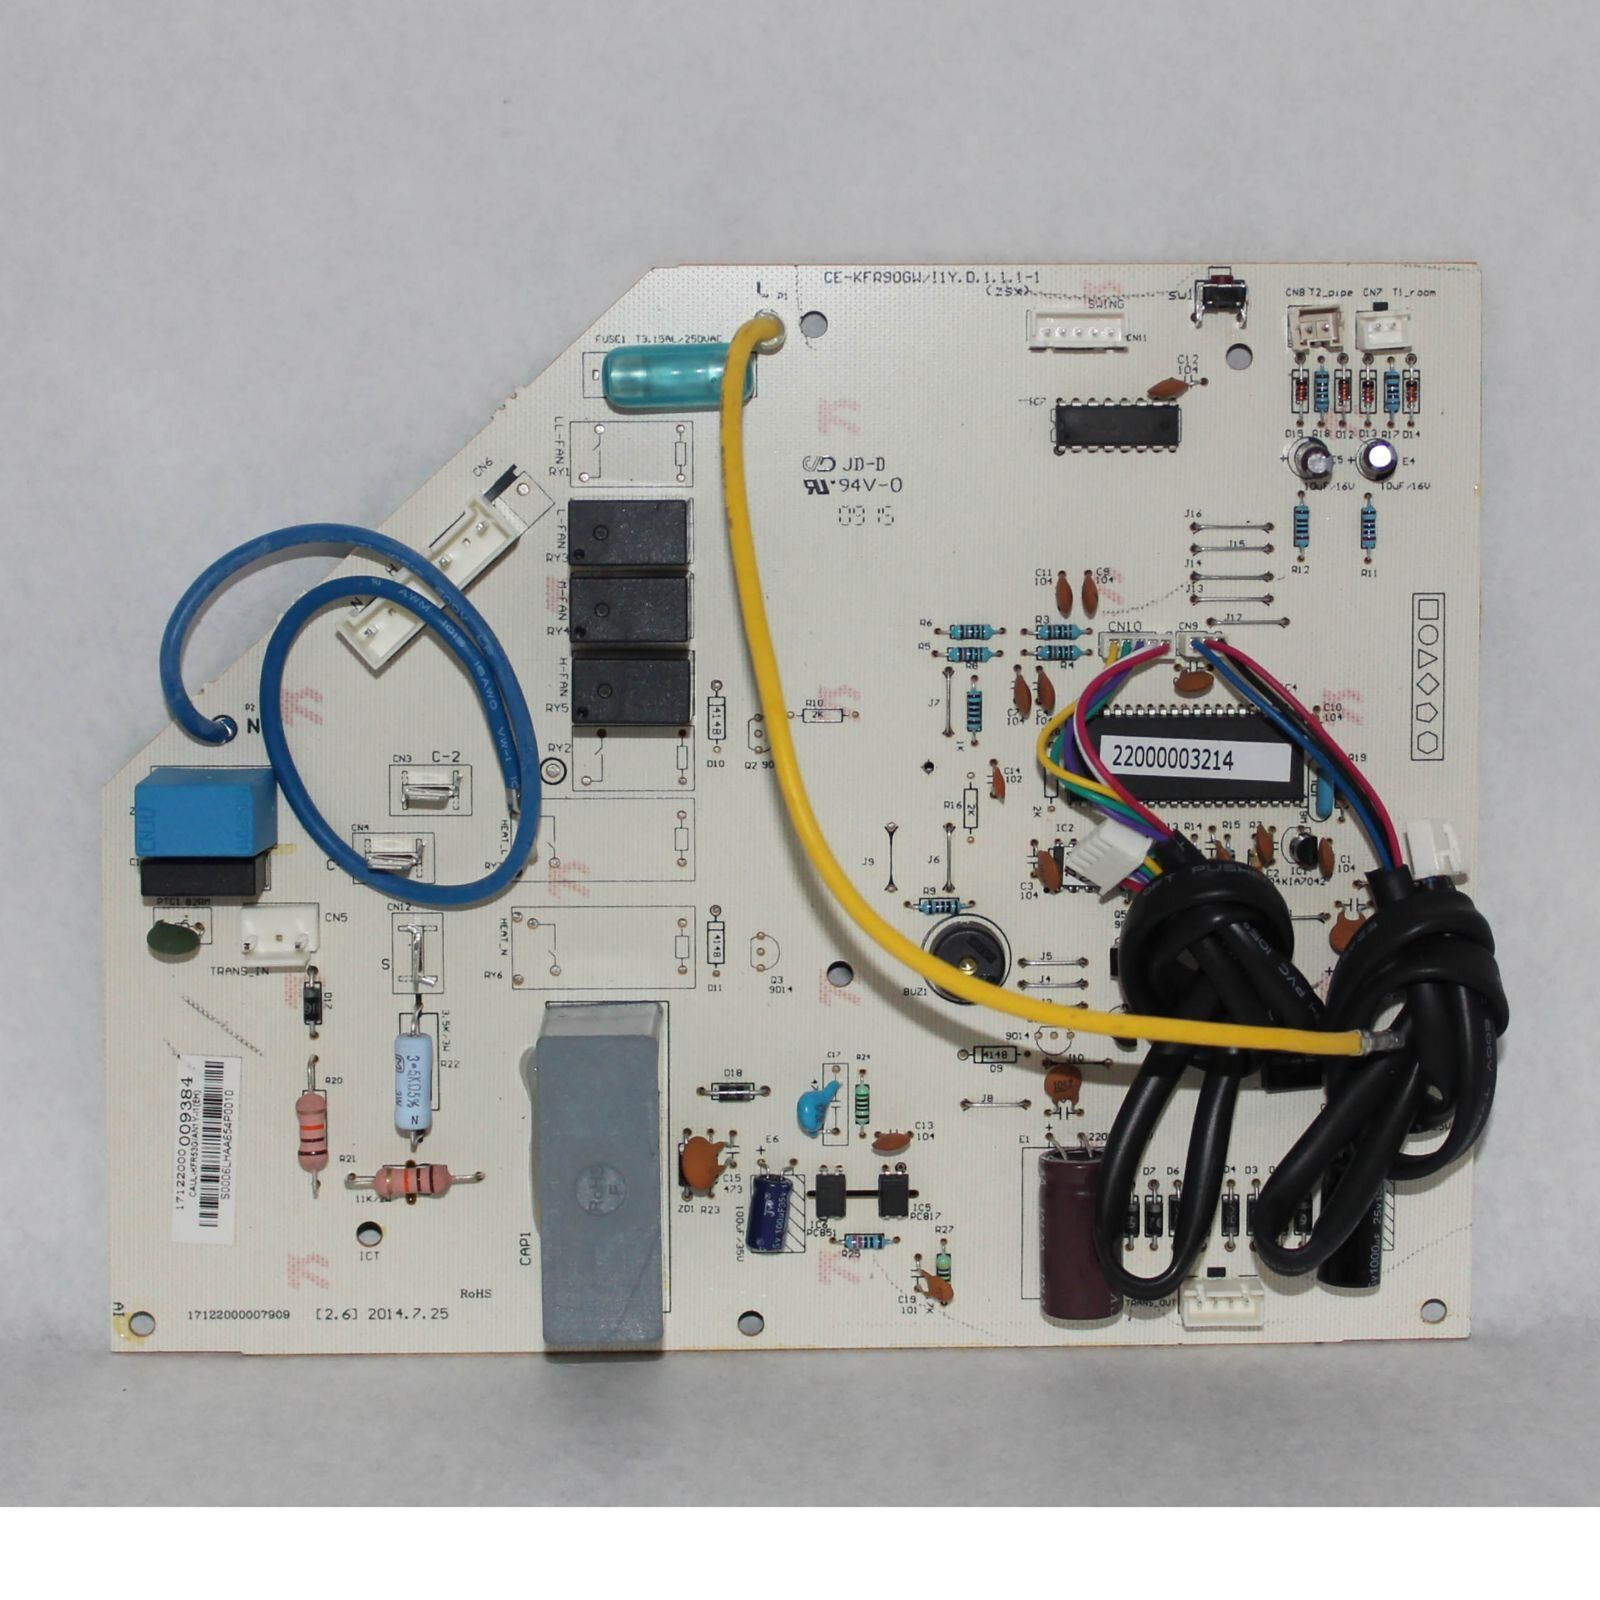 Factory Authorized Parts 17122000009384 Main Control Circuit Board In 2020 Circuit Board Circuit Maine